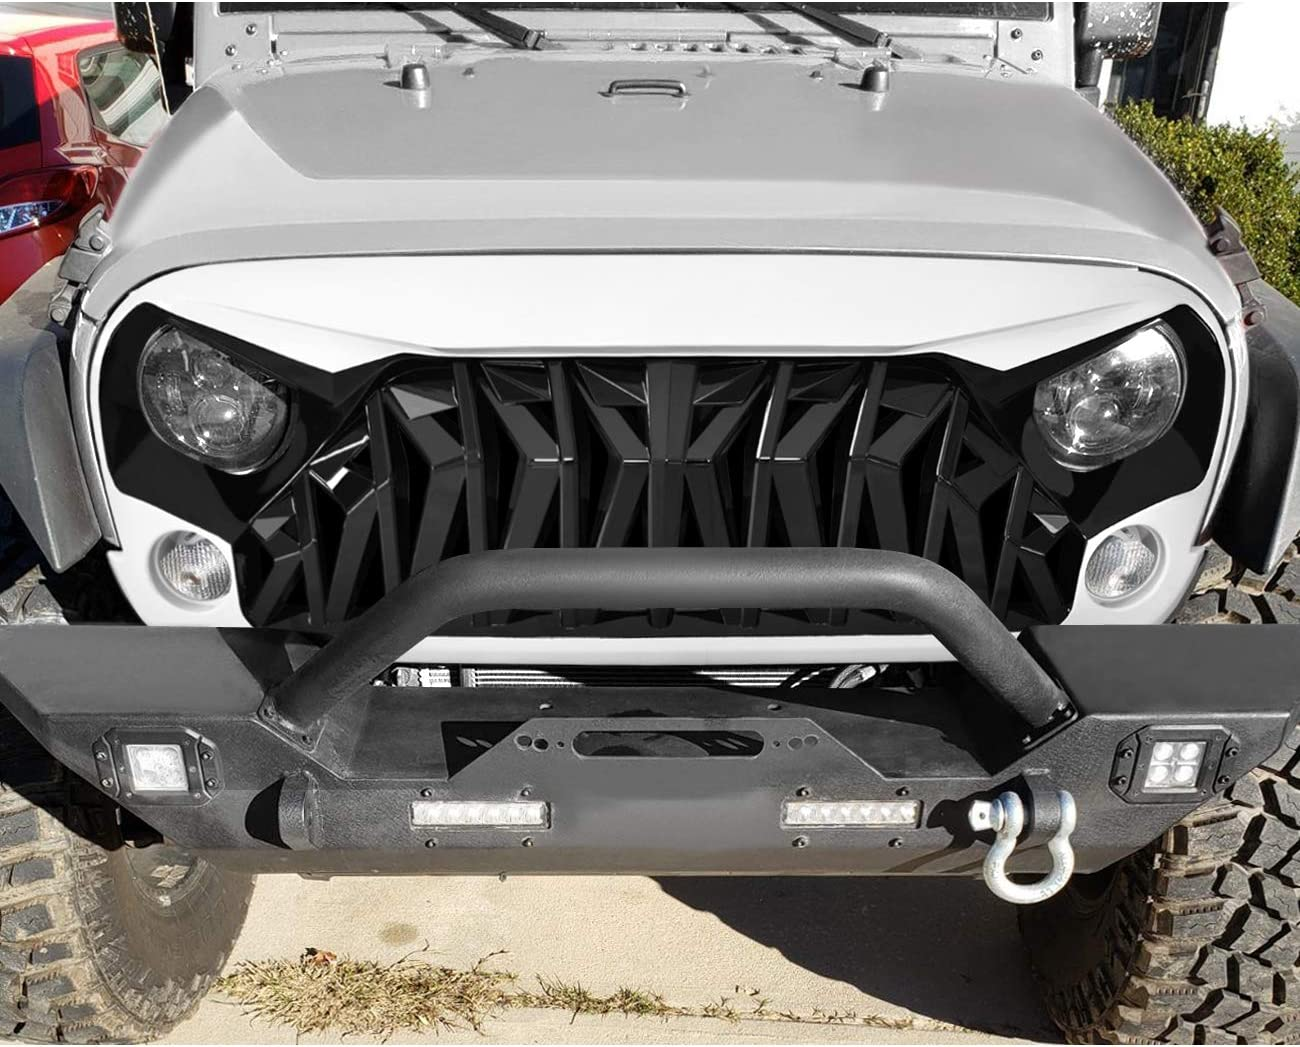 Grilles ABS ICARS White & Black Shark Grill Front Cover for 2007 ...